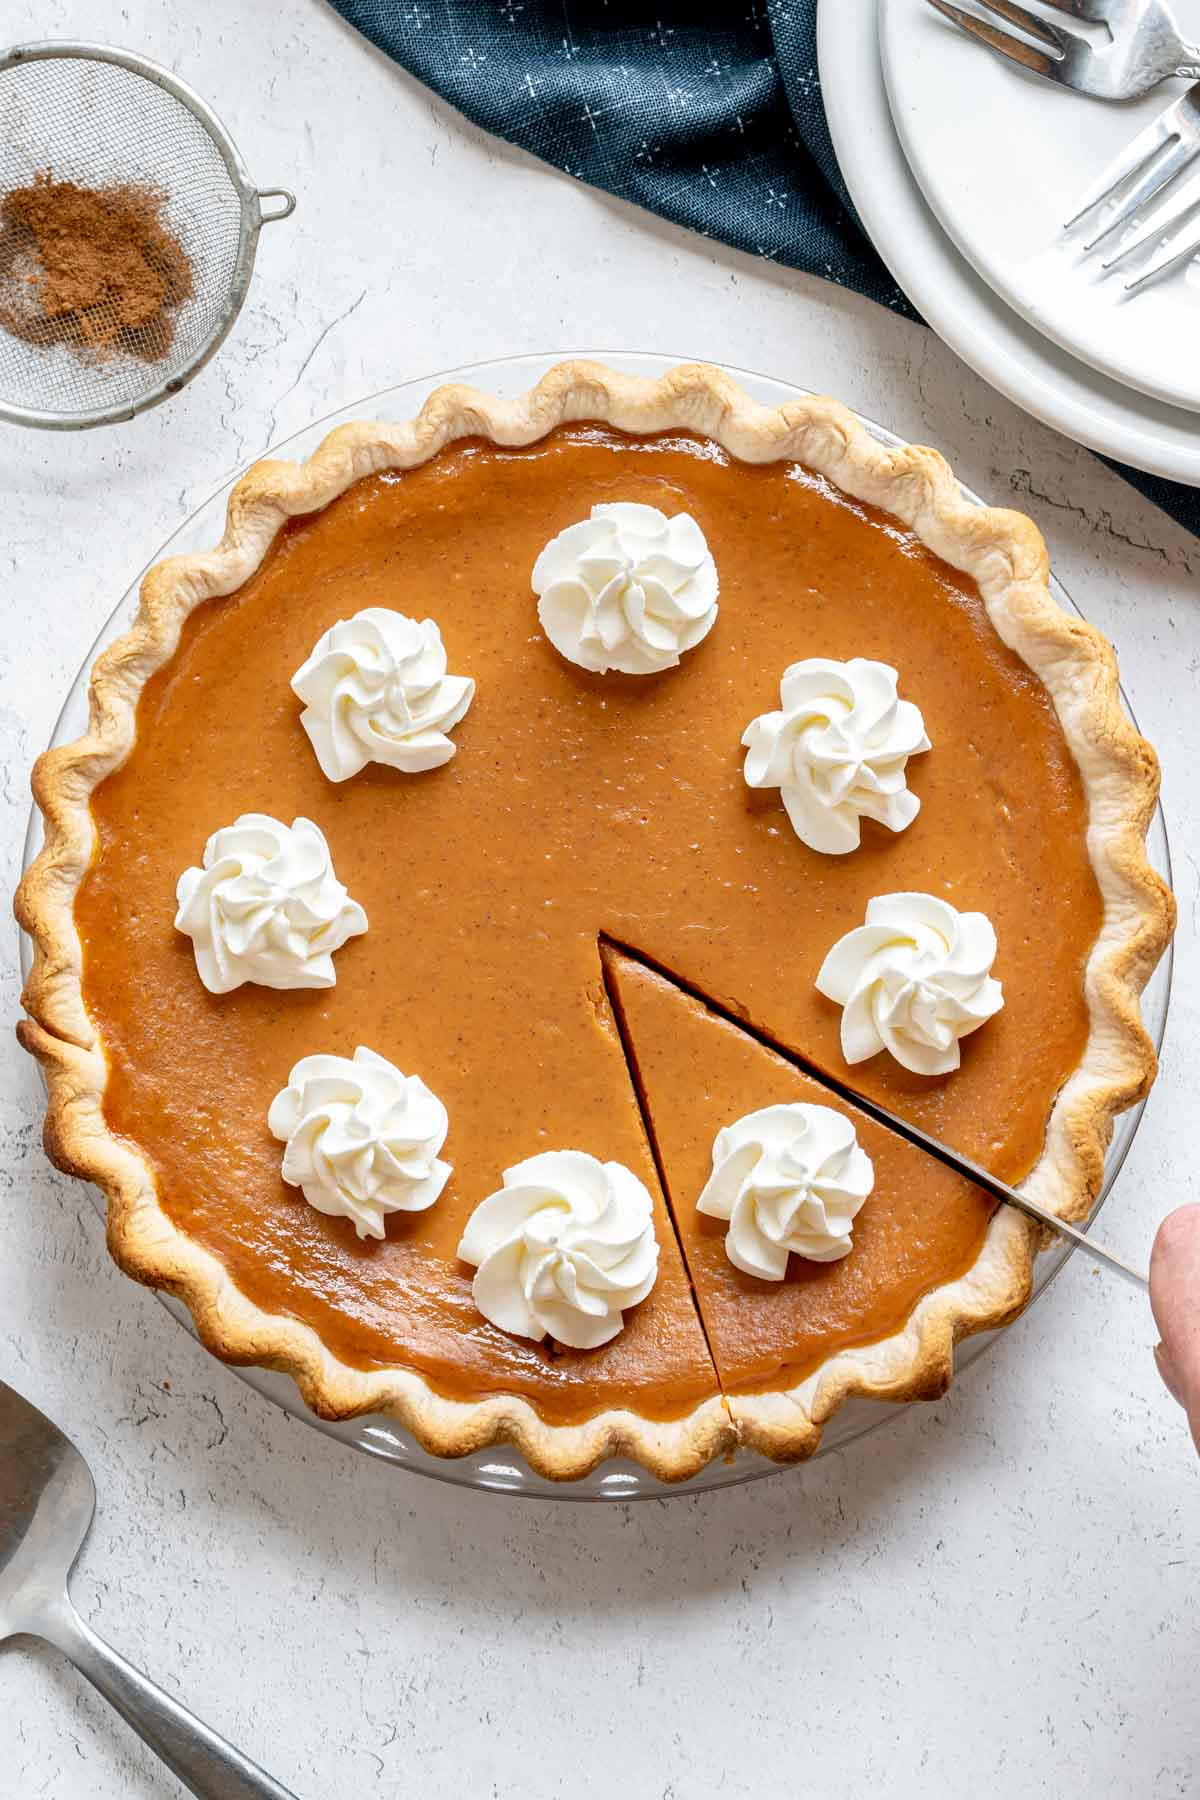 5 Ingredient Pumpkin Pie with whipped cream on top